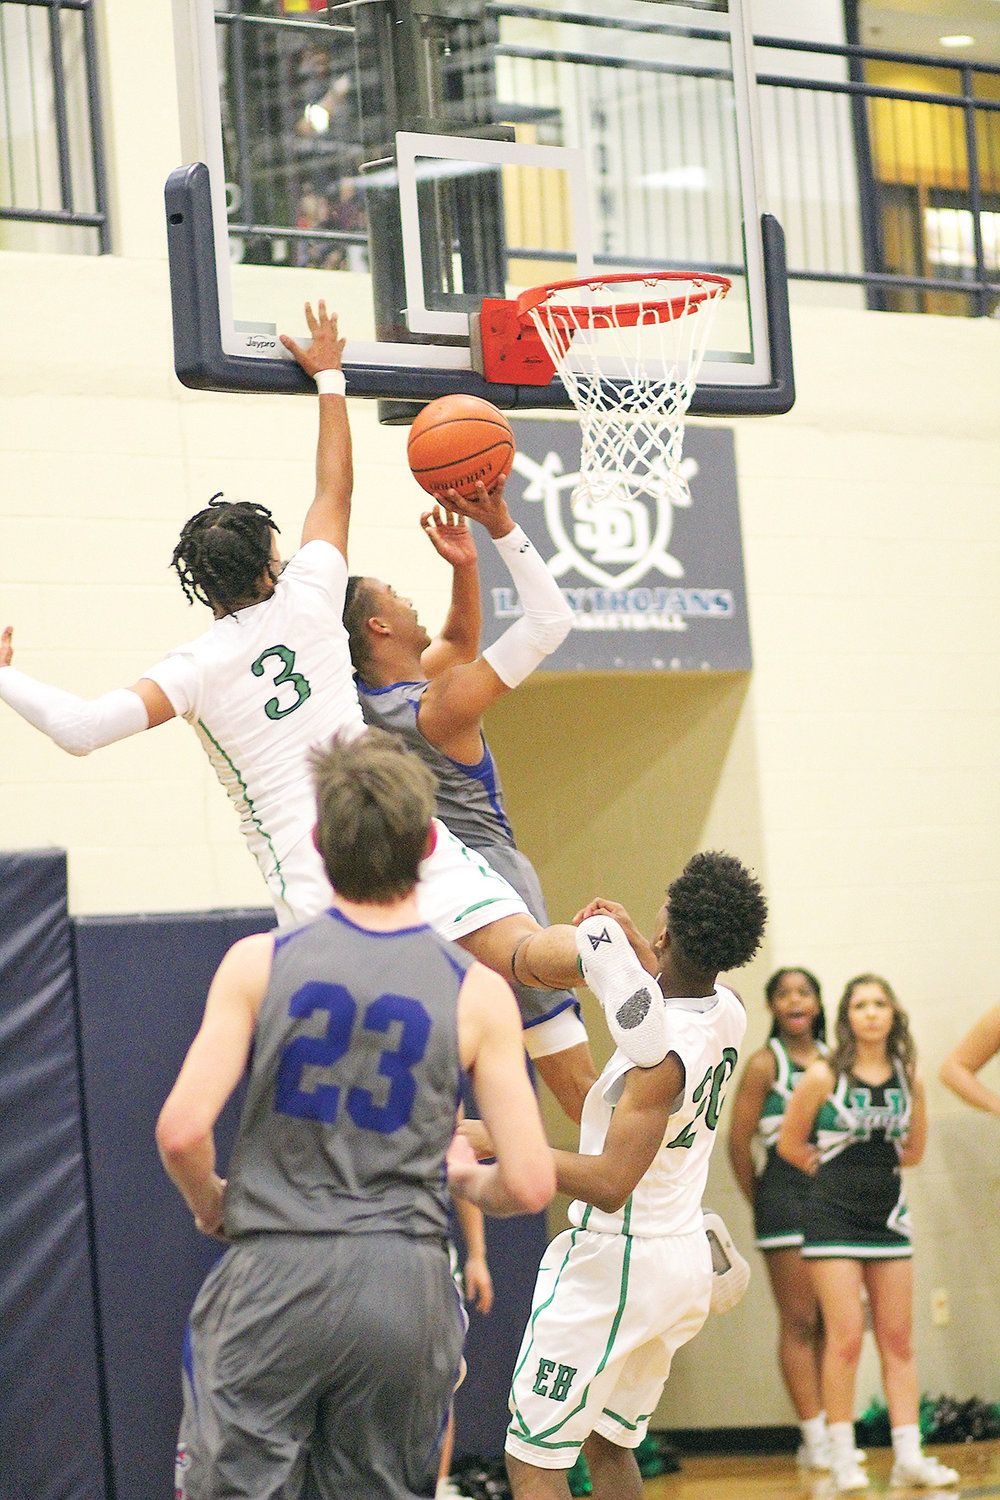 CLEVELAND BLUE RAIDER guard JaCobi Wood puts up a shot in front of East Hamilton's Morrell Schramm in the first quarter of the district 5-AAA championship game Tuesday, at Soddy-Daisy High School.